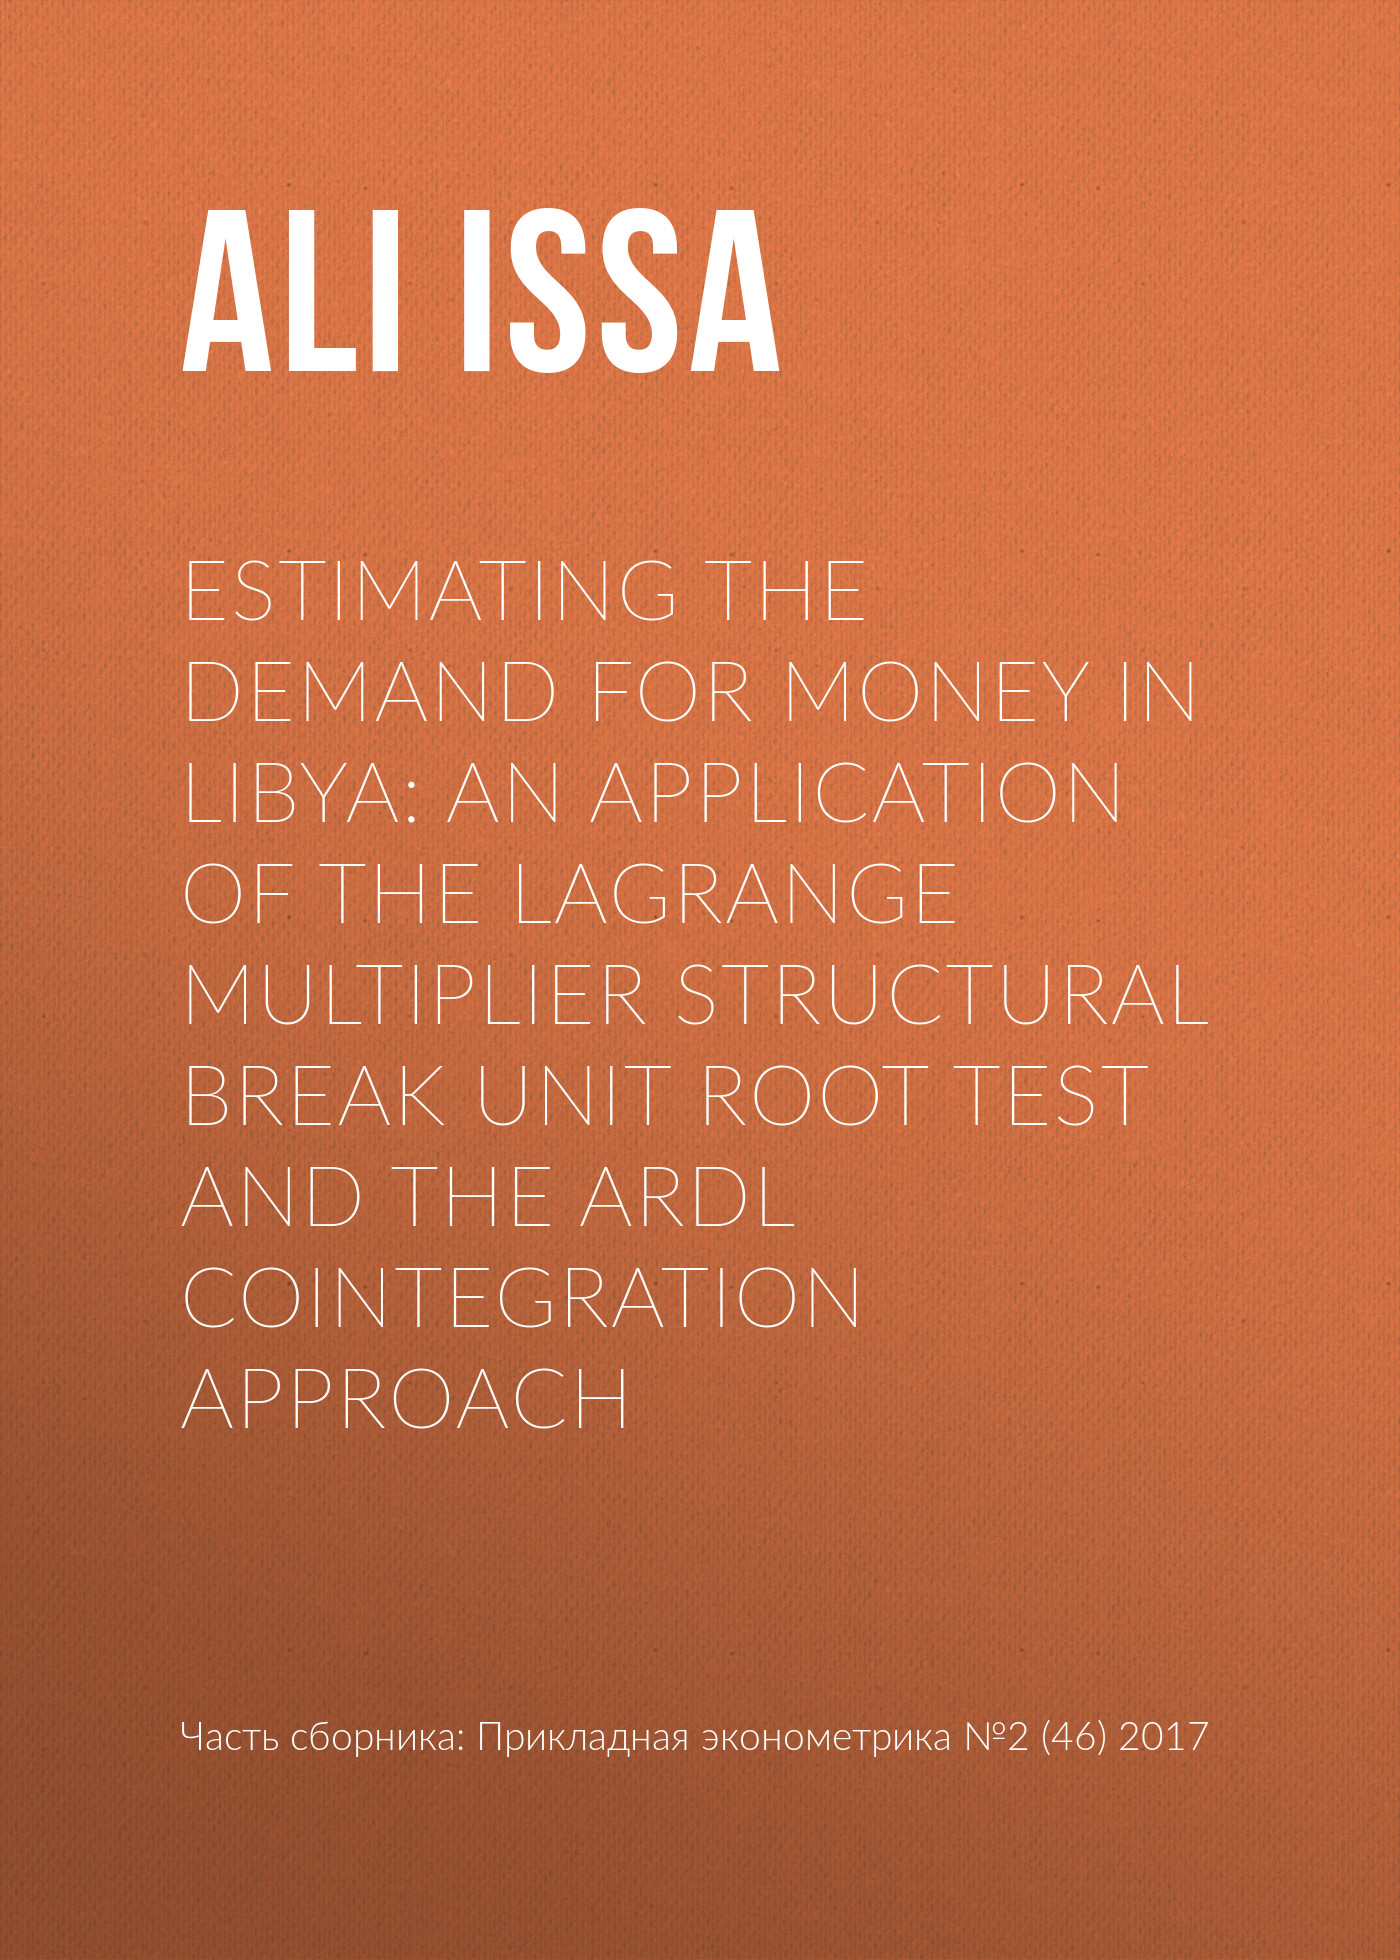 Ali Issa Estimating the demand for money in Libya: An application of the Lagrange multiplier structural break unit root test and the ARDL cointegration approach недорго, оригинальная цена